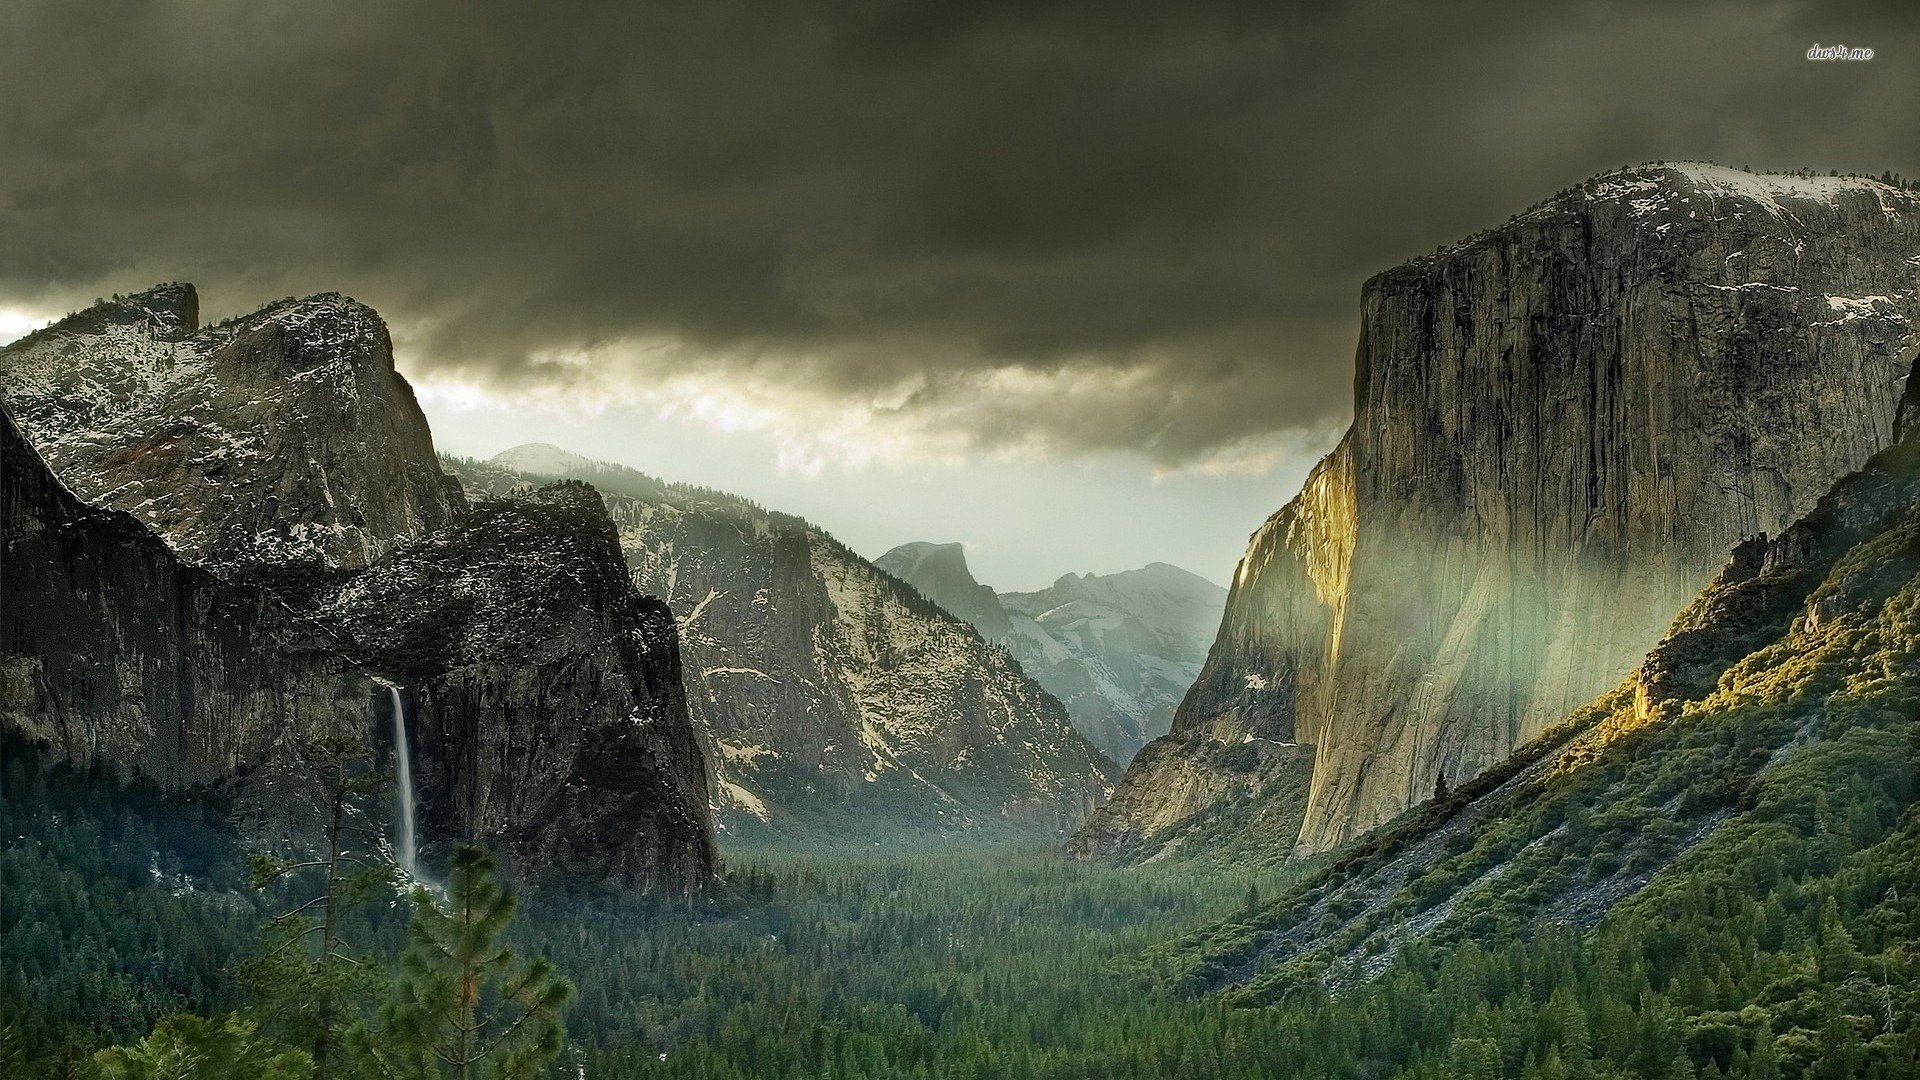 Yosemite National Park Wallpapers Digitalhintnet 1920x1080